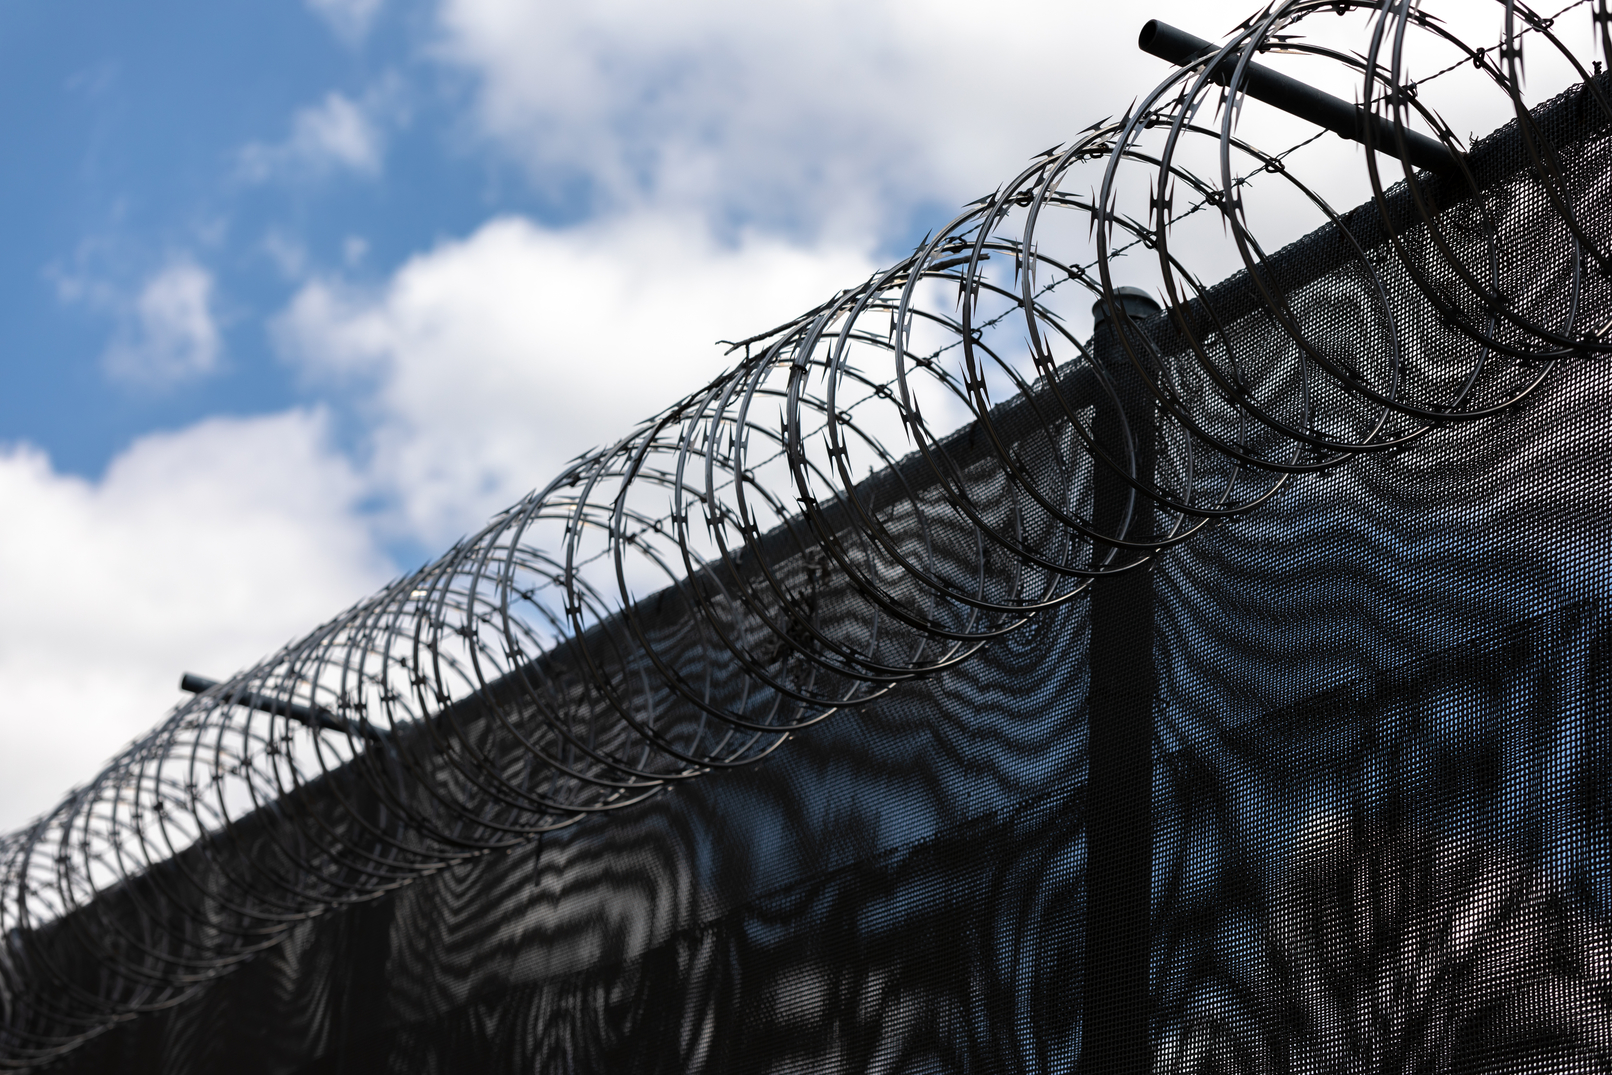 New Class Action Lawsuit Alleges Serious Healthcare Deficiencies in ICE Detention Centers